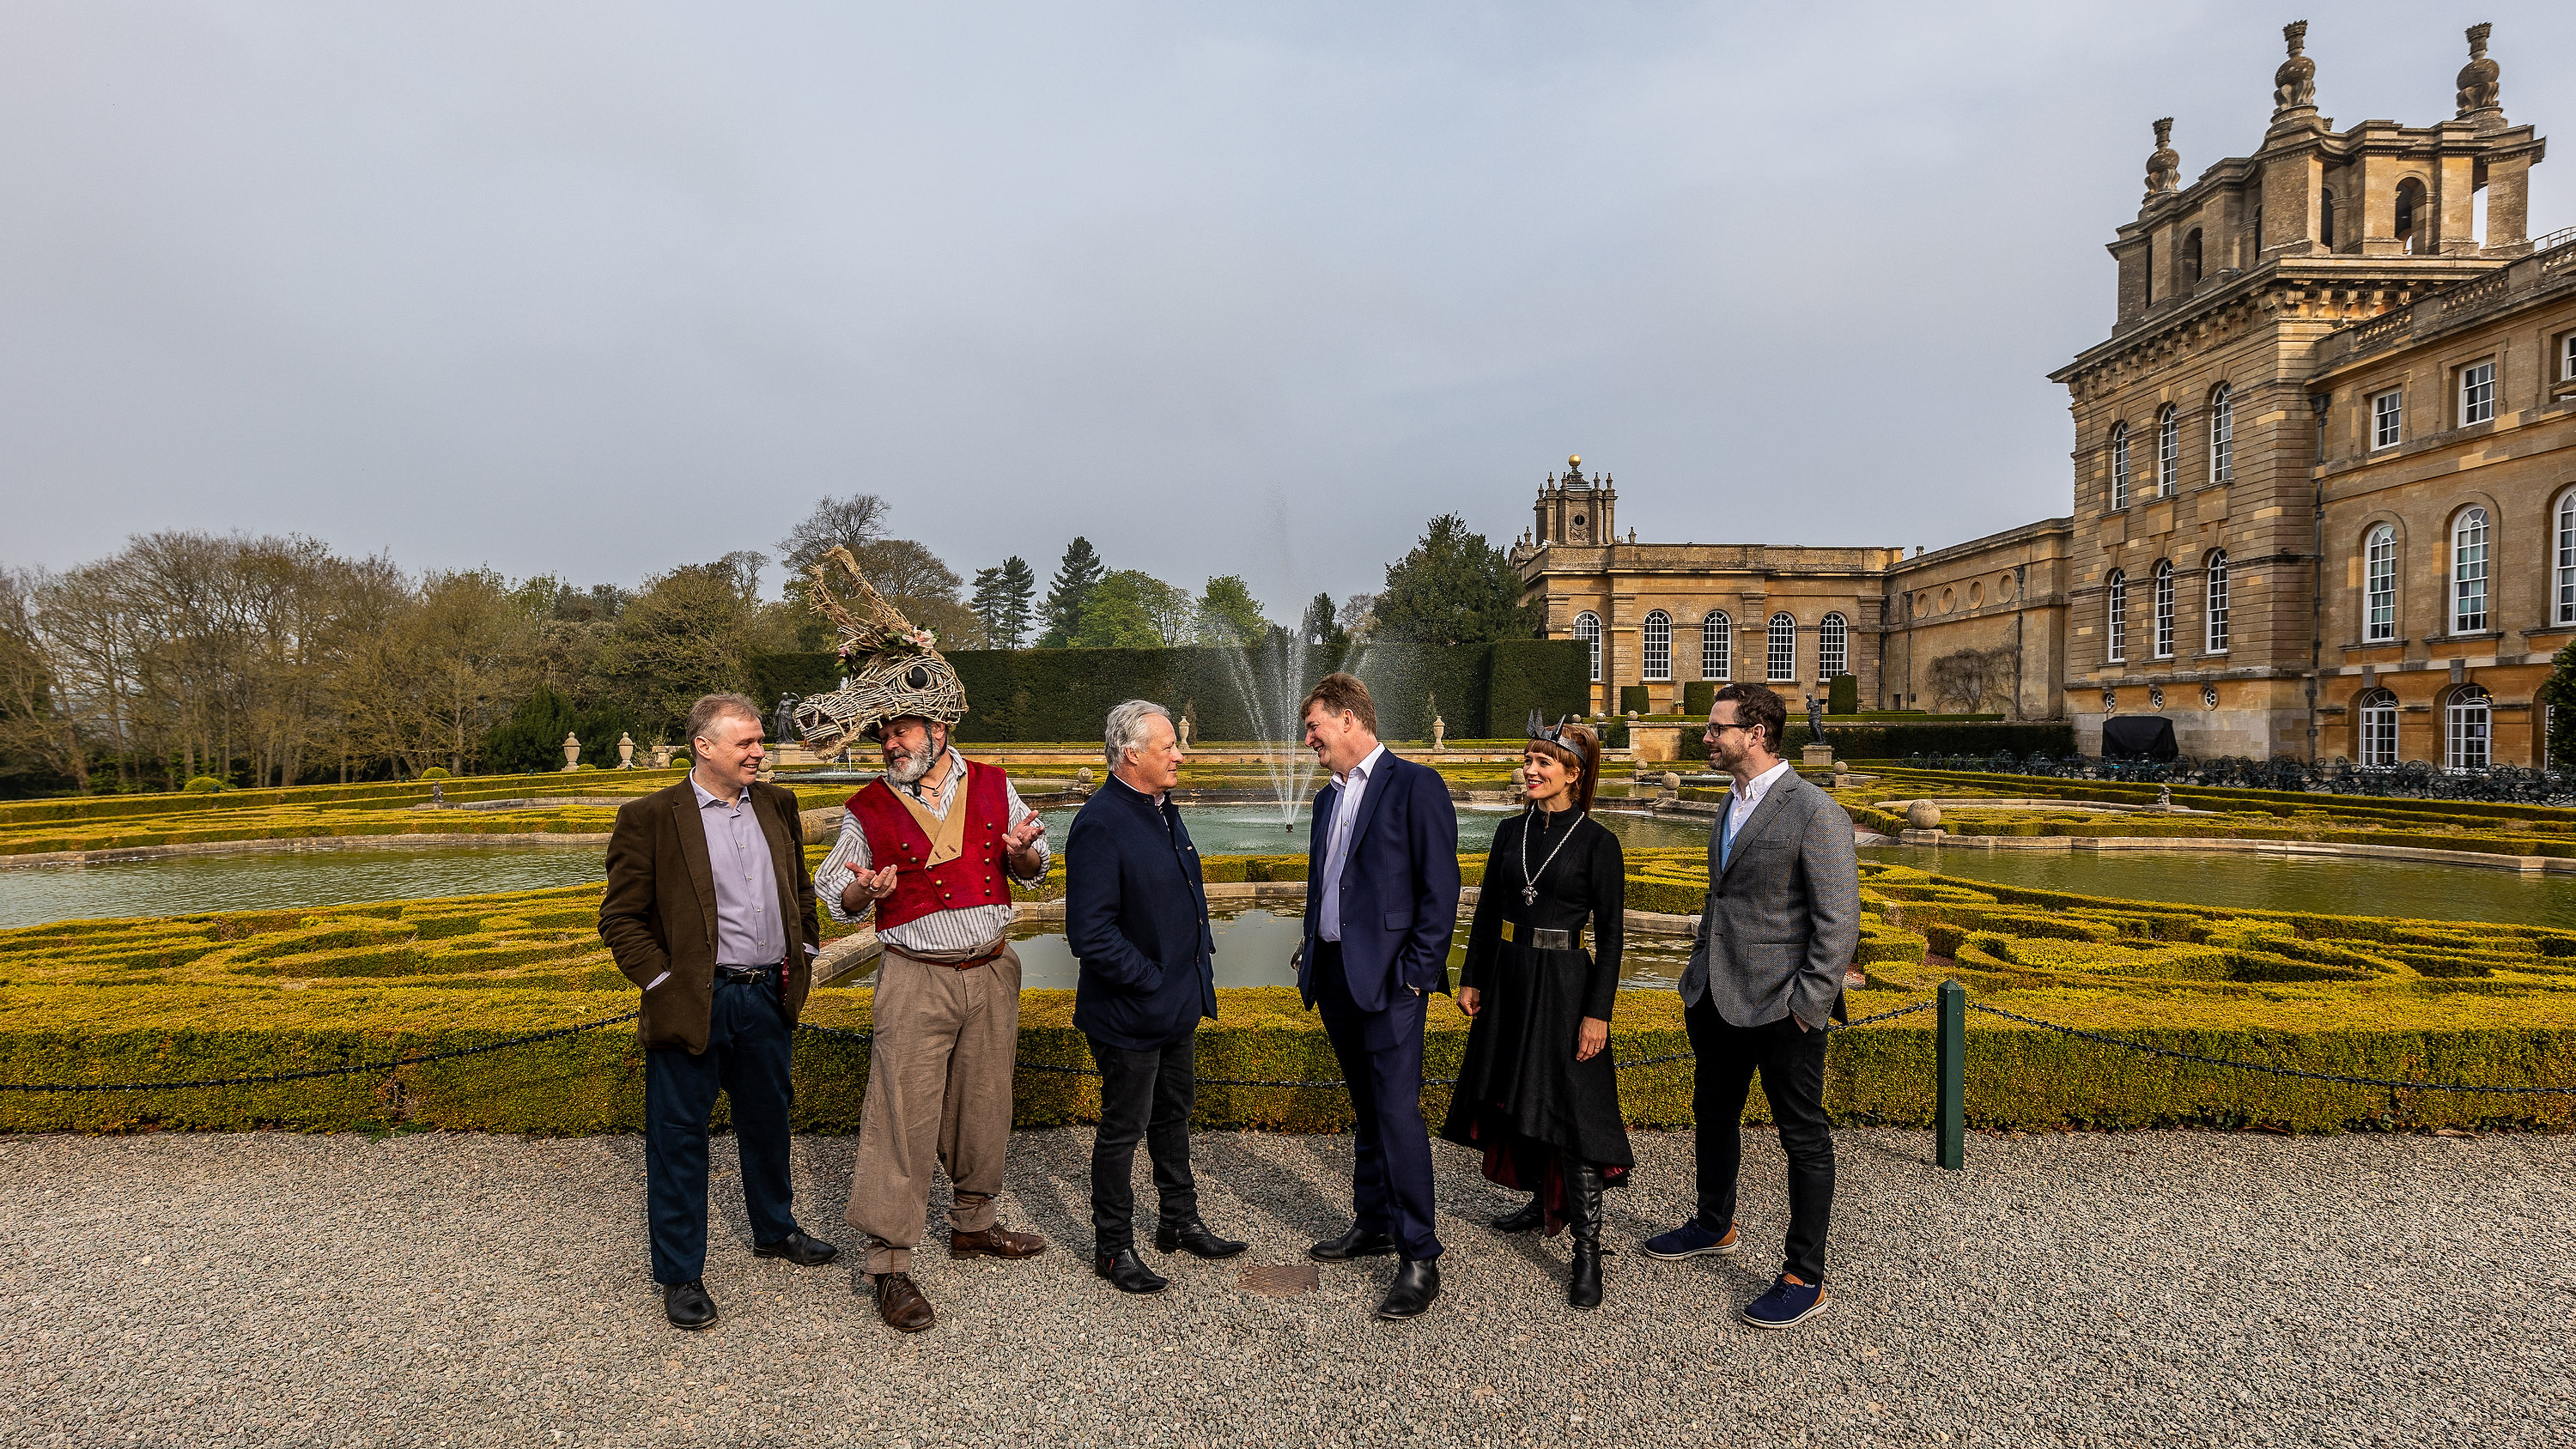 – Dominic Hare, Paul Hawkyard, James Cundall, Anthony Findlay, Leandra Ashton and Joni Marks at Blenheim Palace